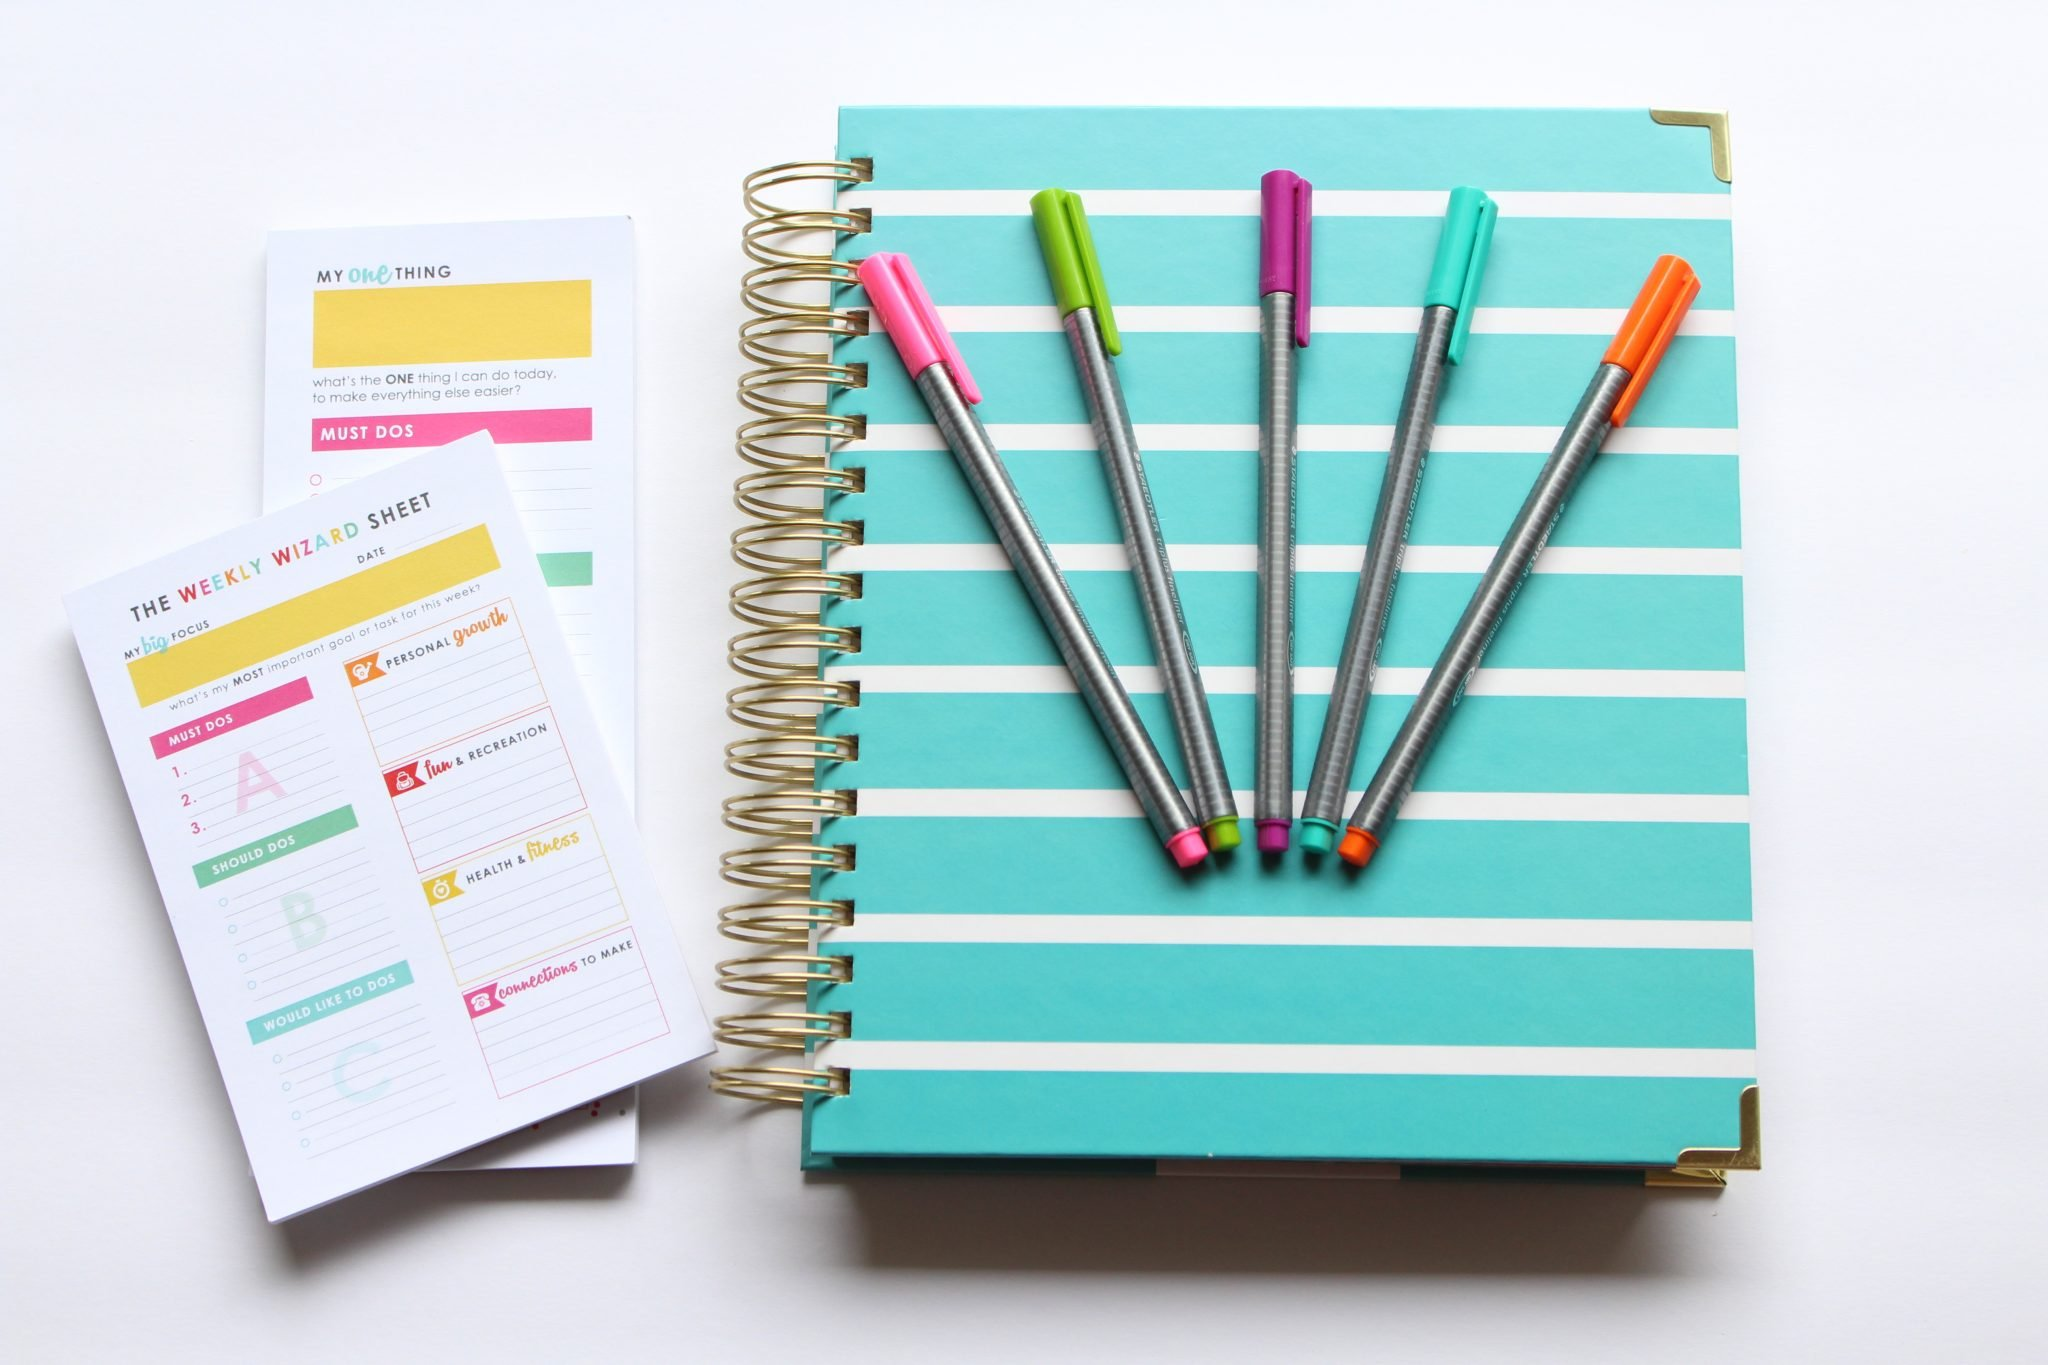 Review Of The Living Well Planner & The CRUSH IT Goal Setting System